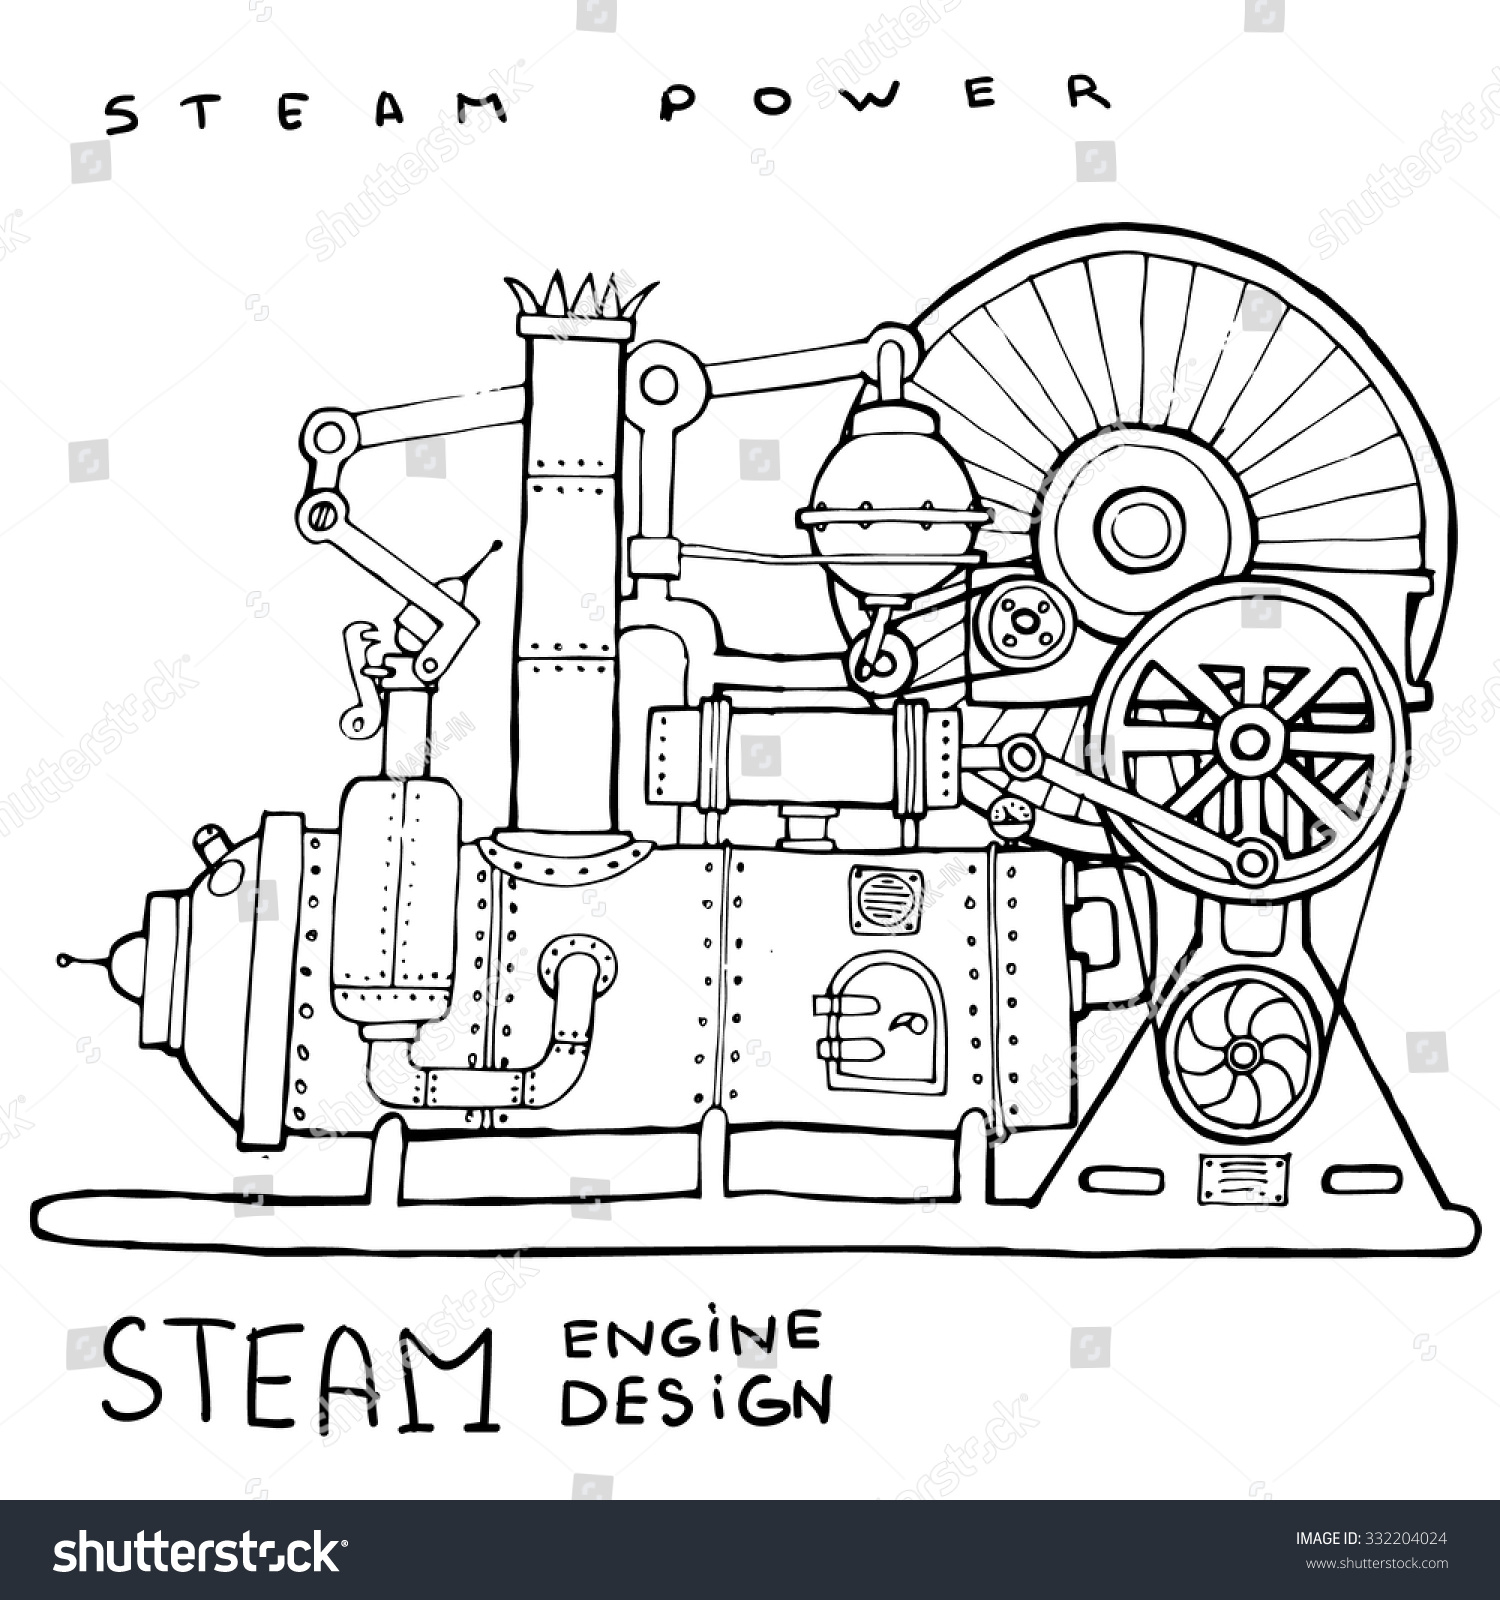 Old Steam Engine Hand Drawn Vintage Stock Vector Royalty Free Piston Diagram Illustrationvector